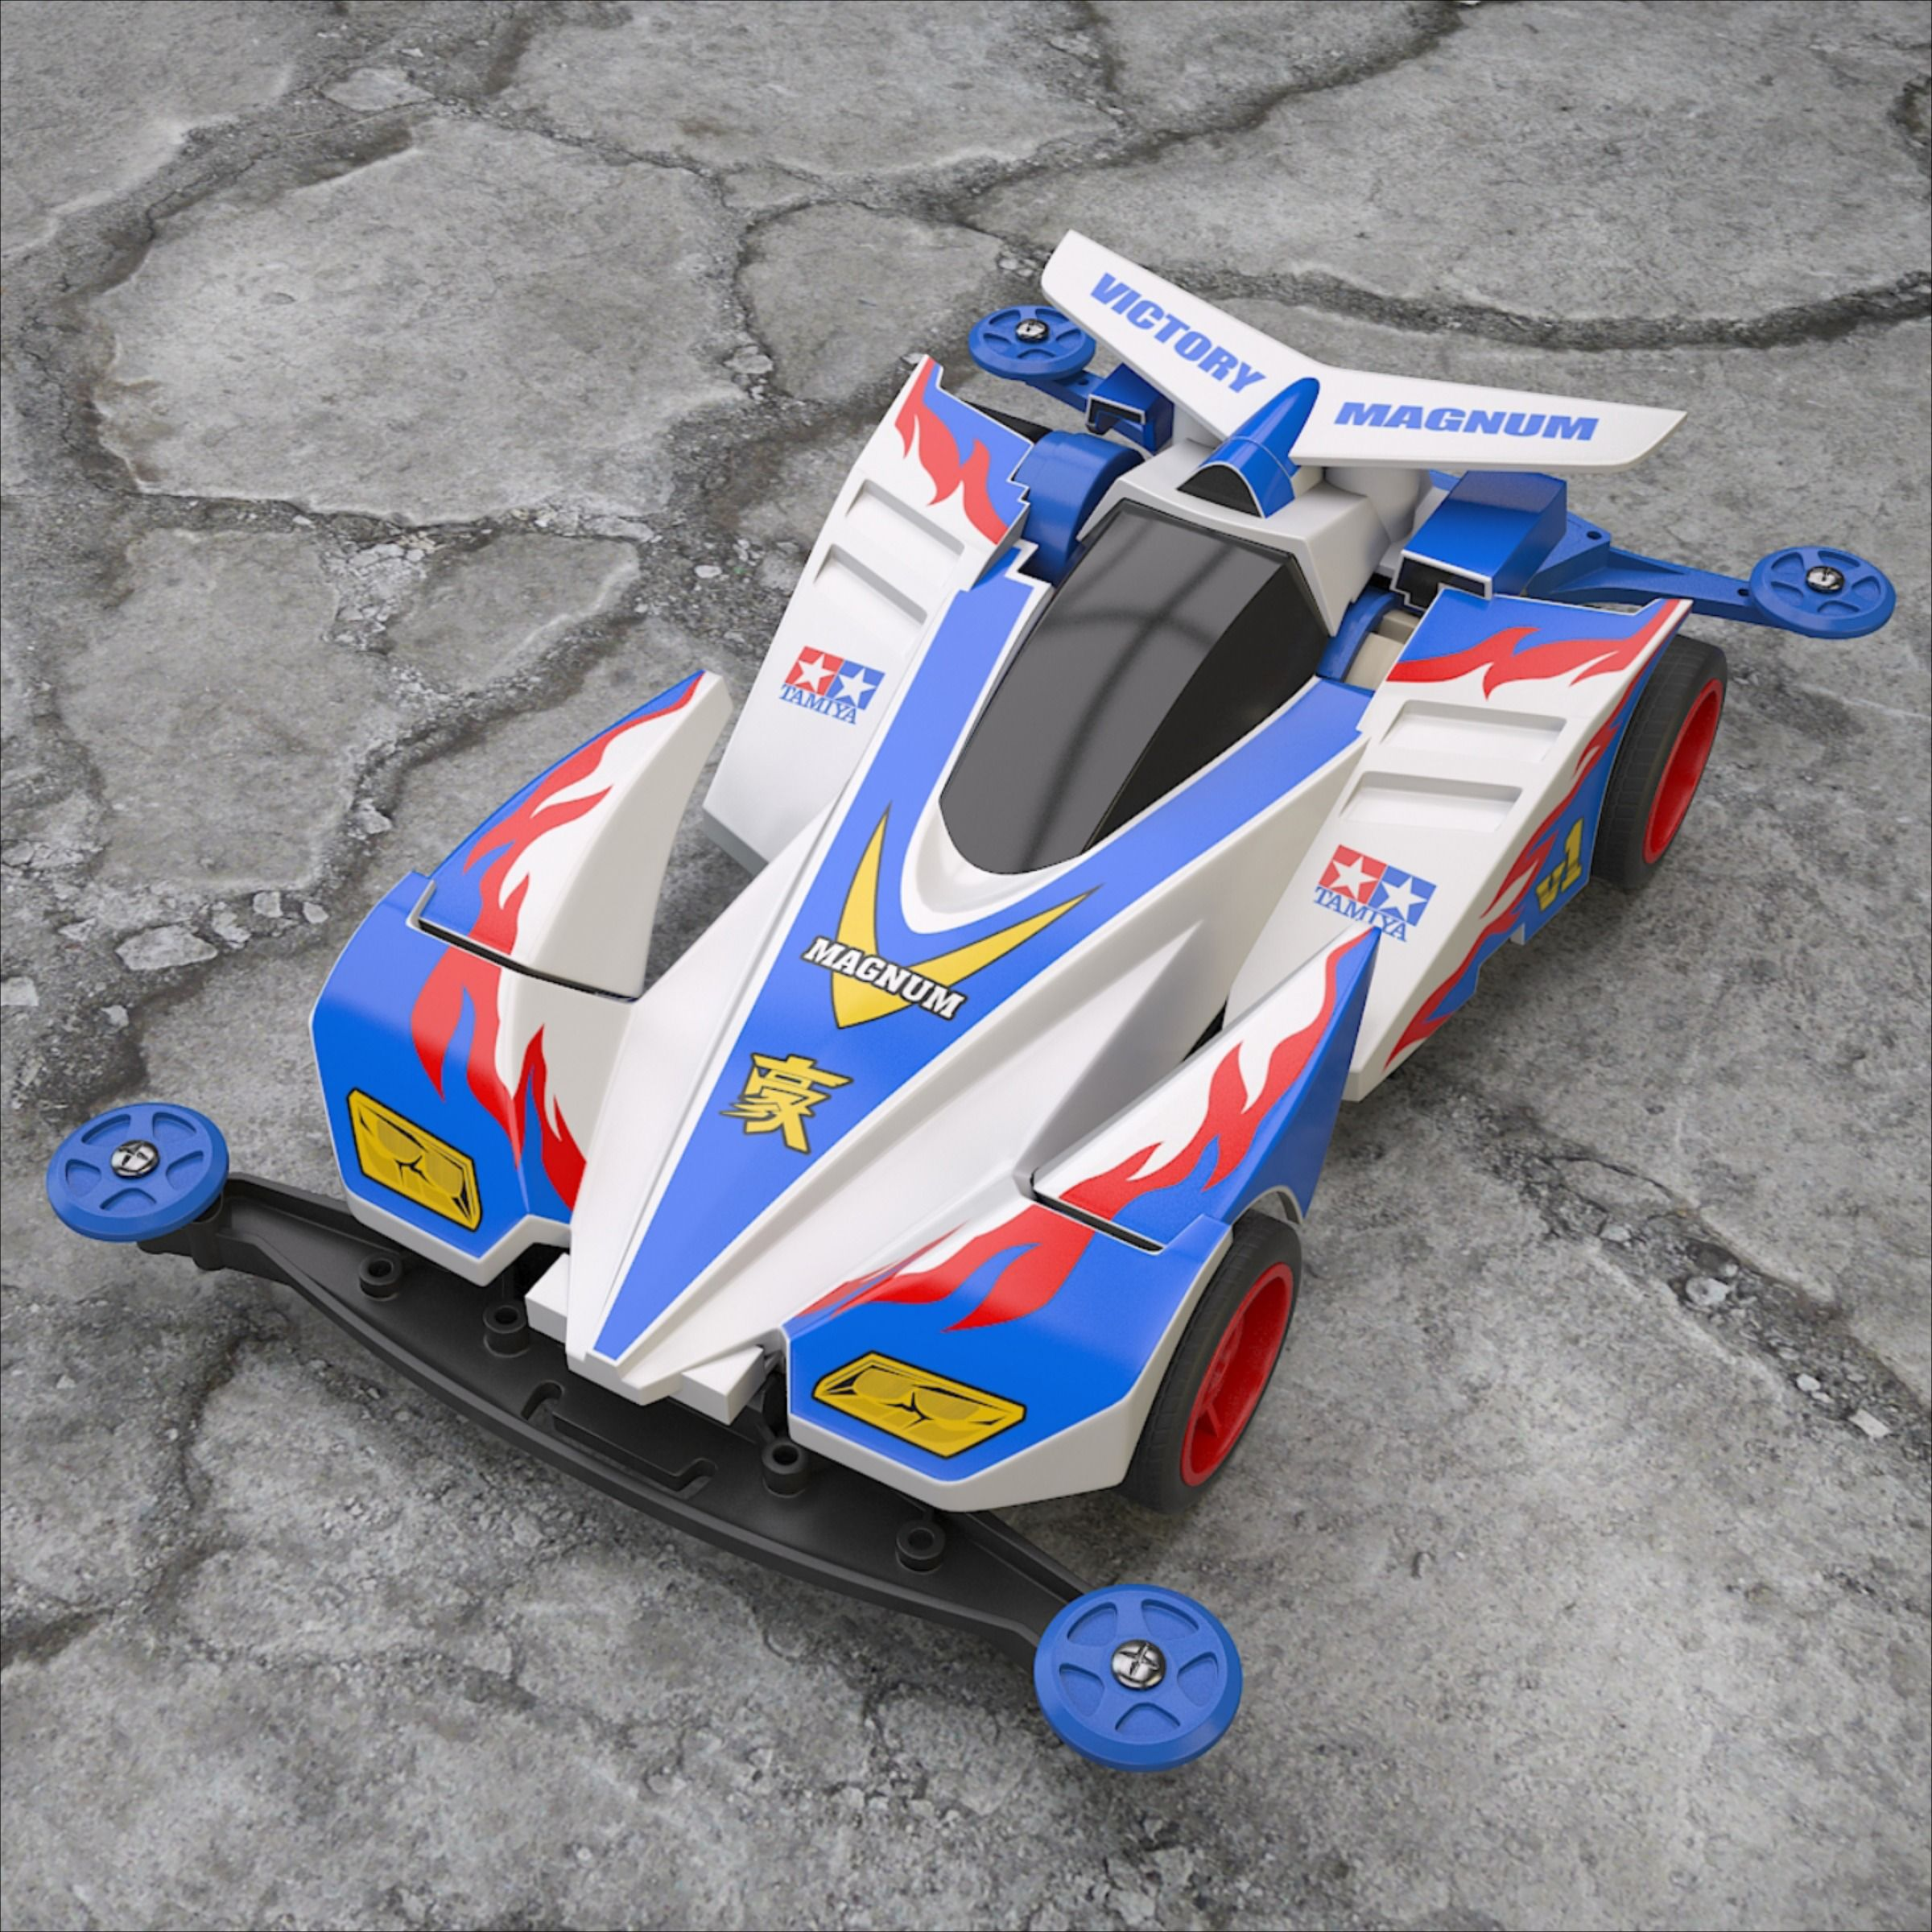 3D Victory Magnum in 2020 Mini 4wd, Victorious, Magnum